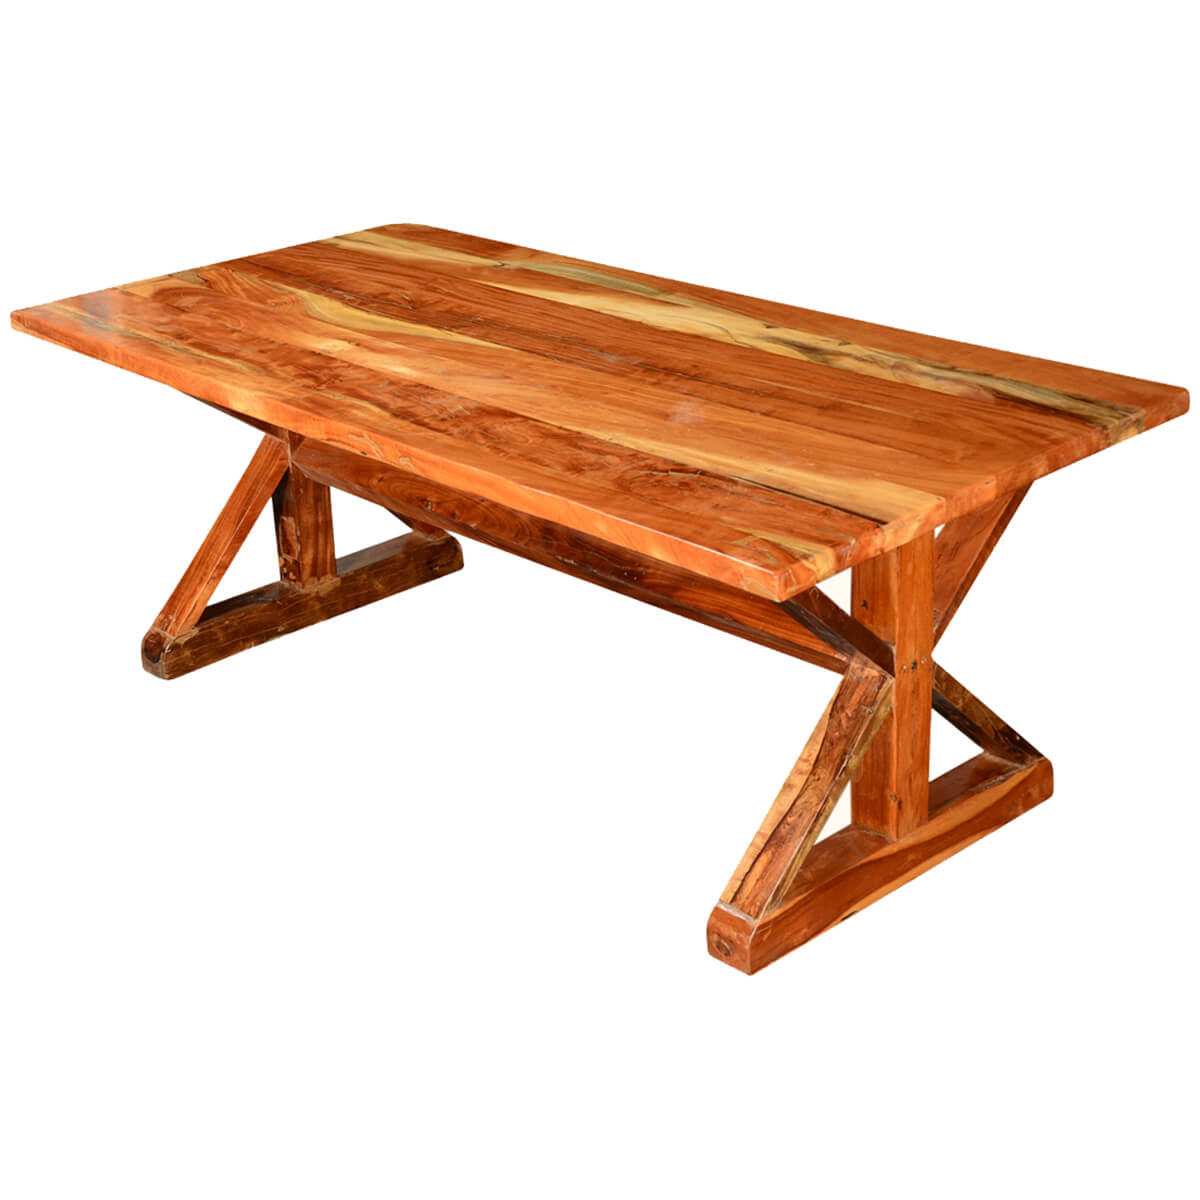 rustic x legs acacia wood 78 5 picnic style trestle dining table. Black Bedroom Furniture Sets. Home Design Ideas